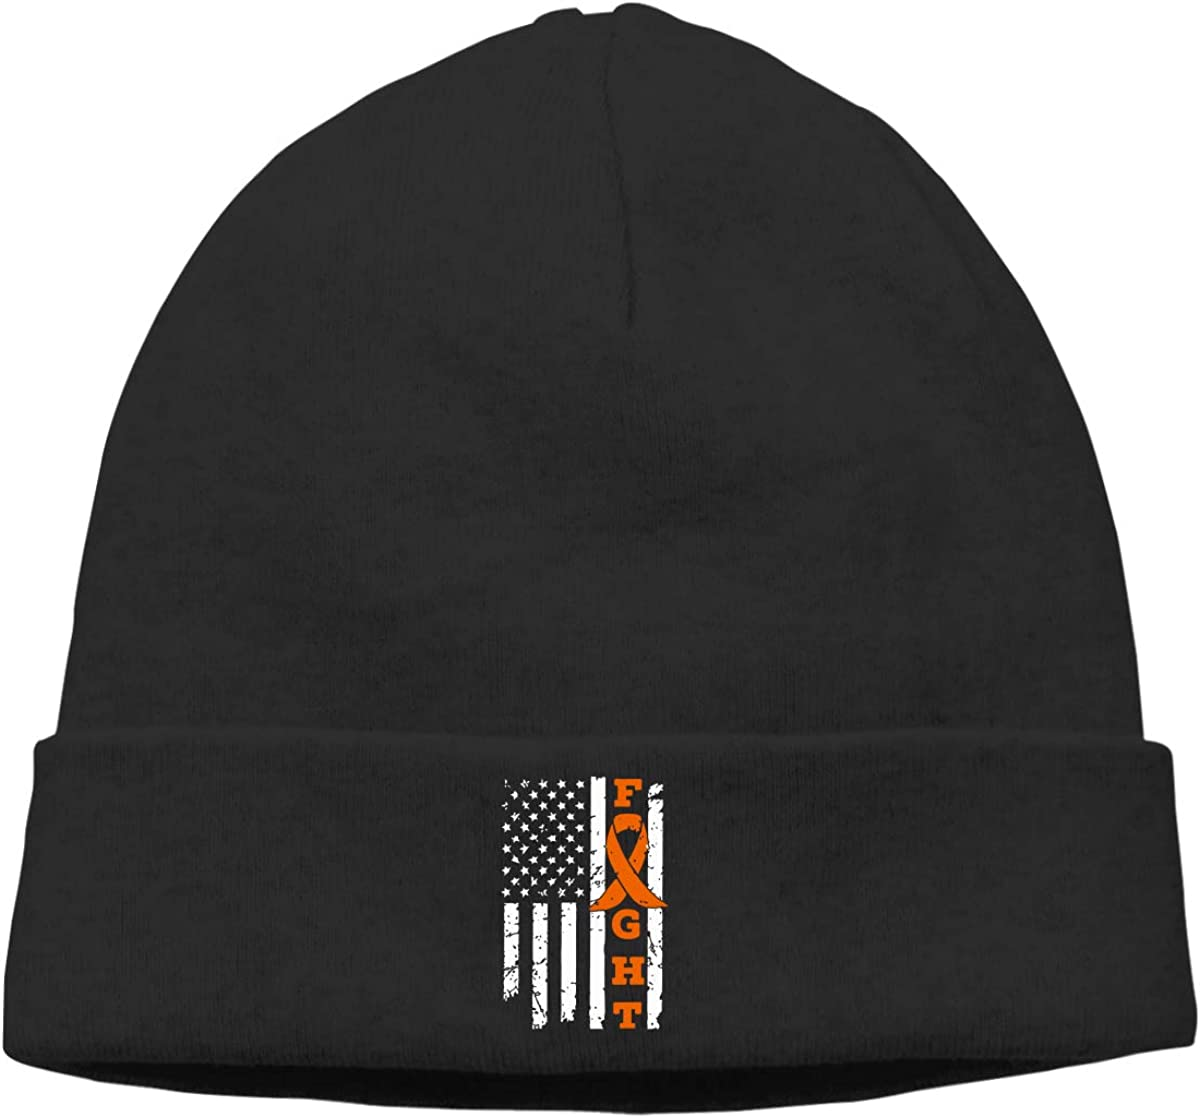 Leukemia Cancer Awareness American Flag Men /& Women Solid Color Beanie Hat Stretchy /& Soft Winter Cap Thin